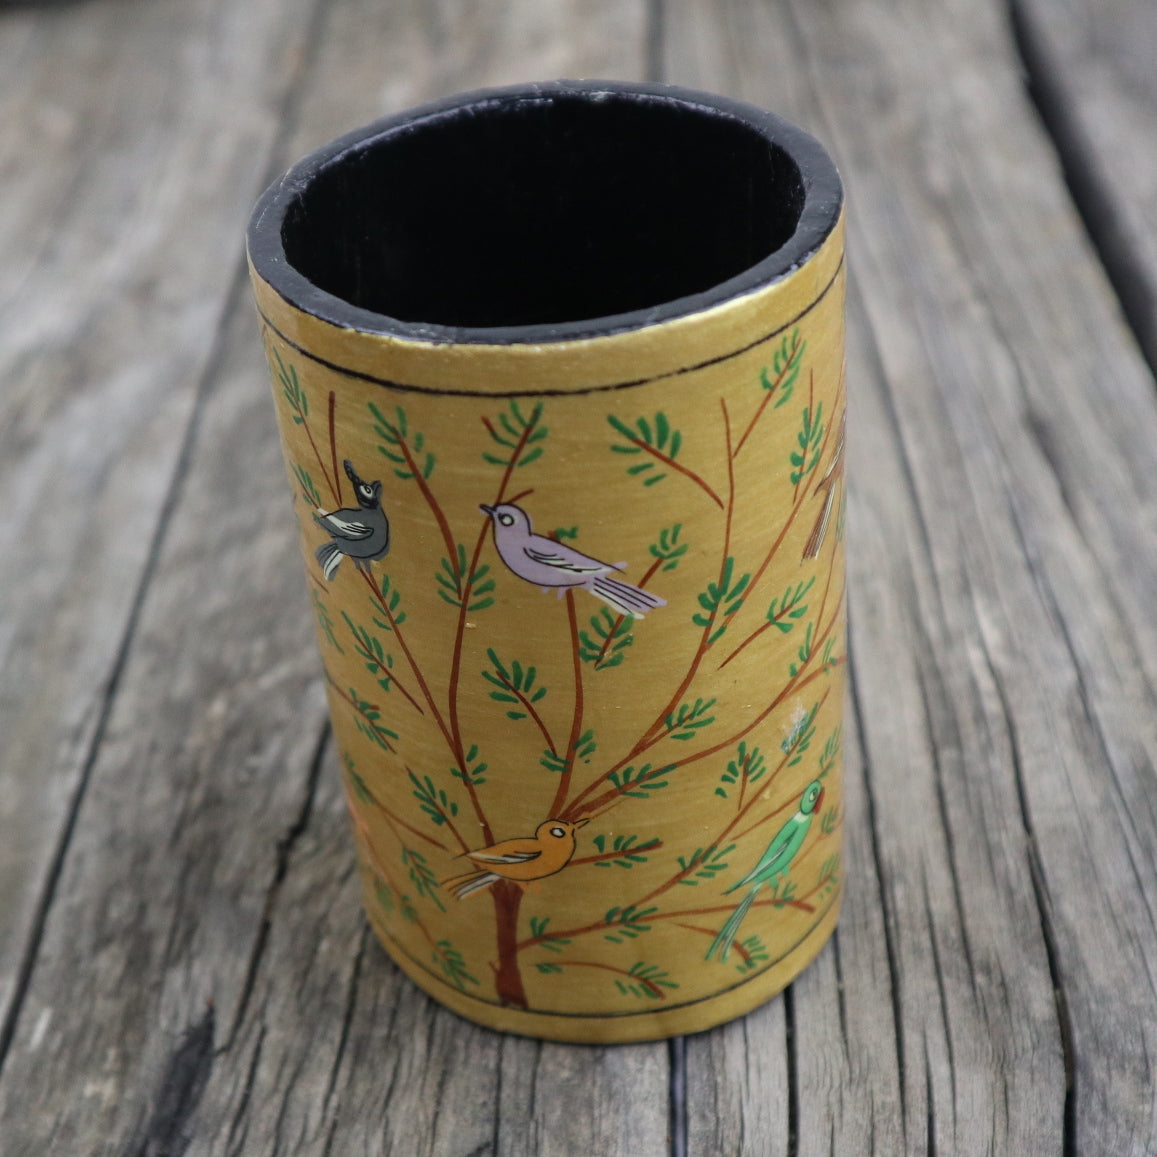 Fair Trade Ethical Paper Mache Pen Holder